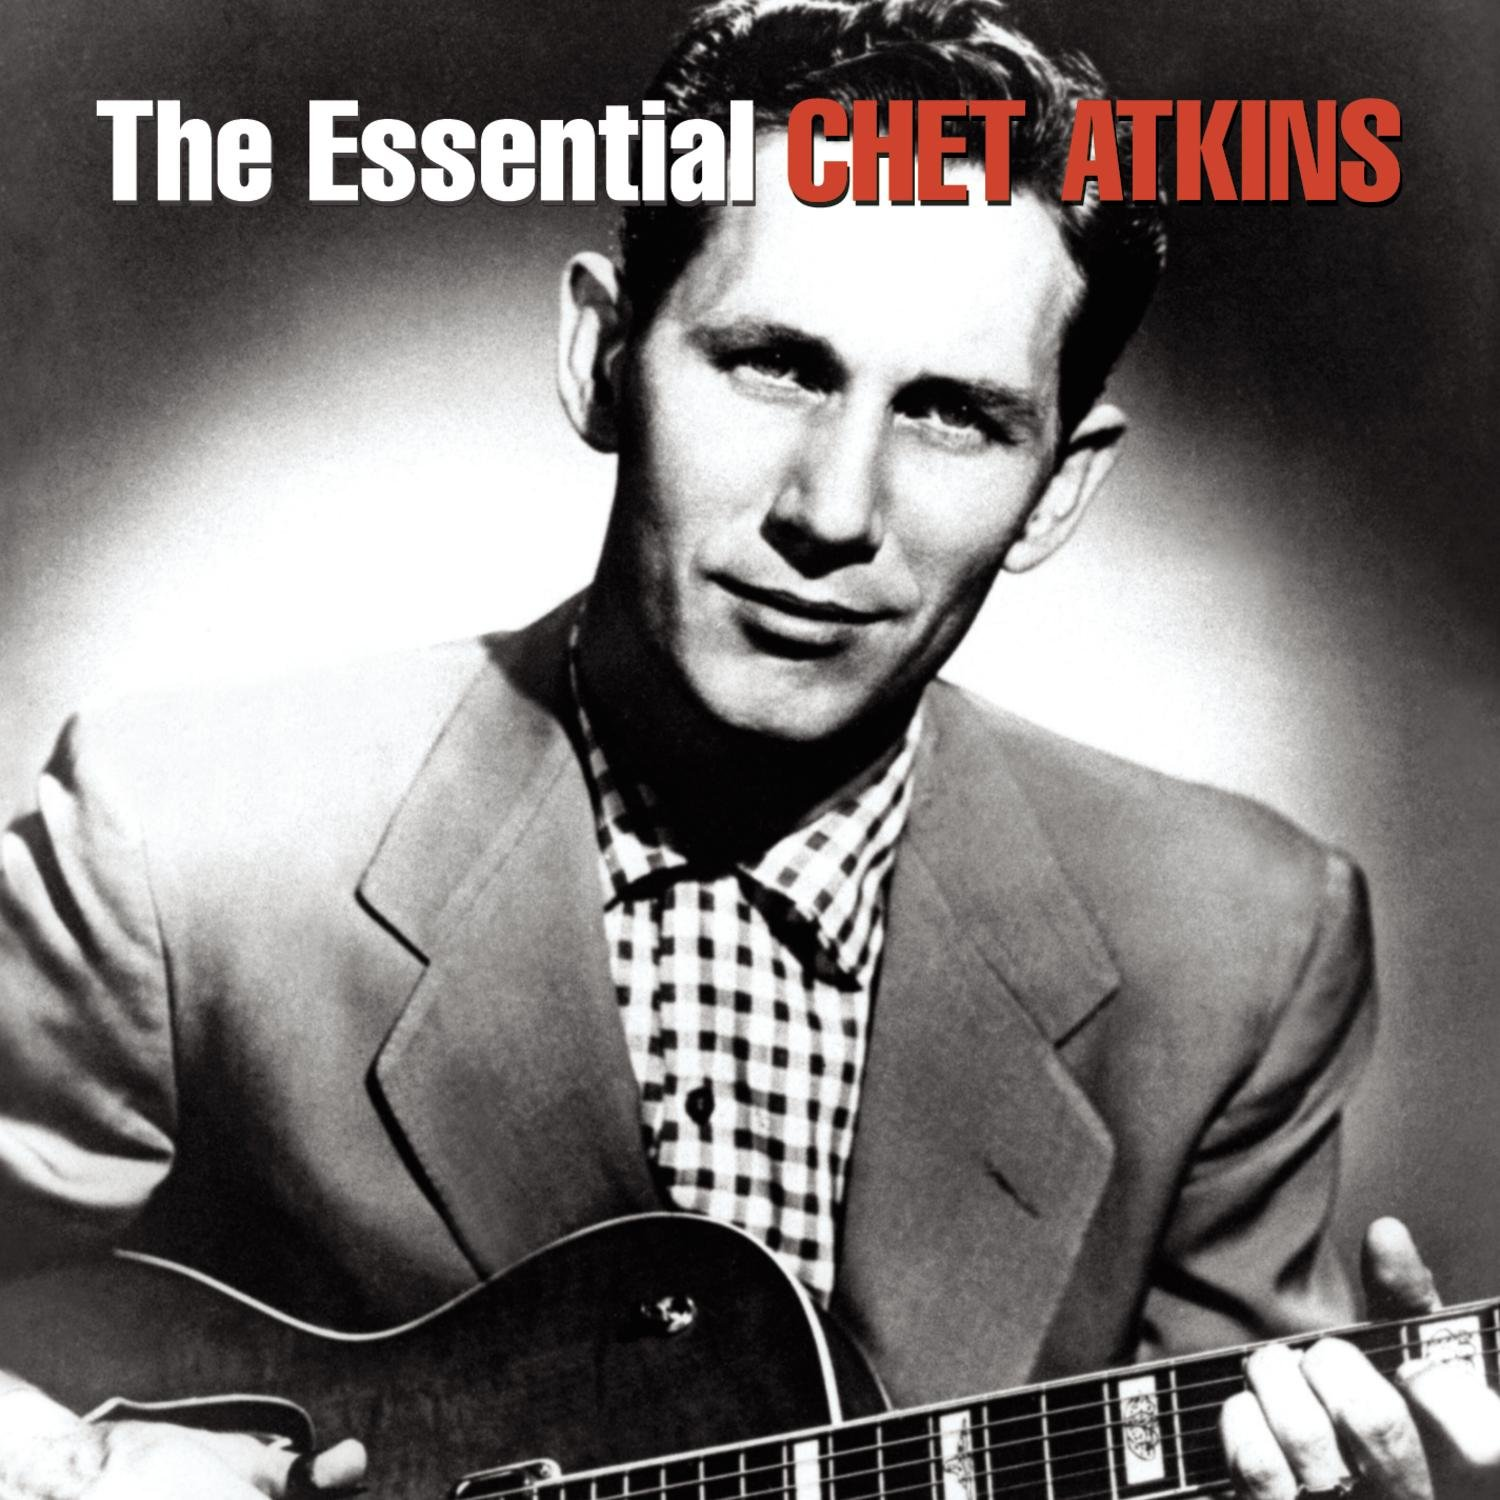 25% OFF The Essential Atkins Chet Sales of SALE items from new works